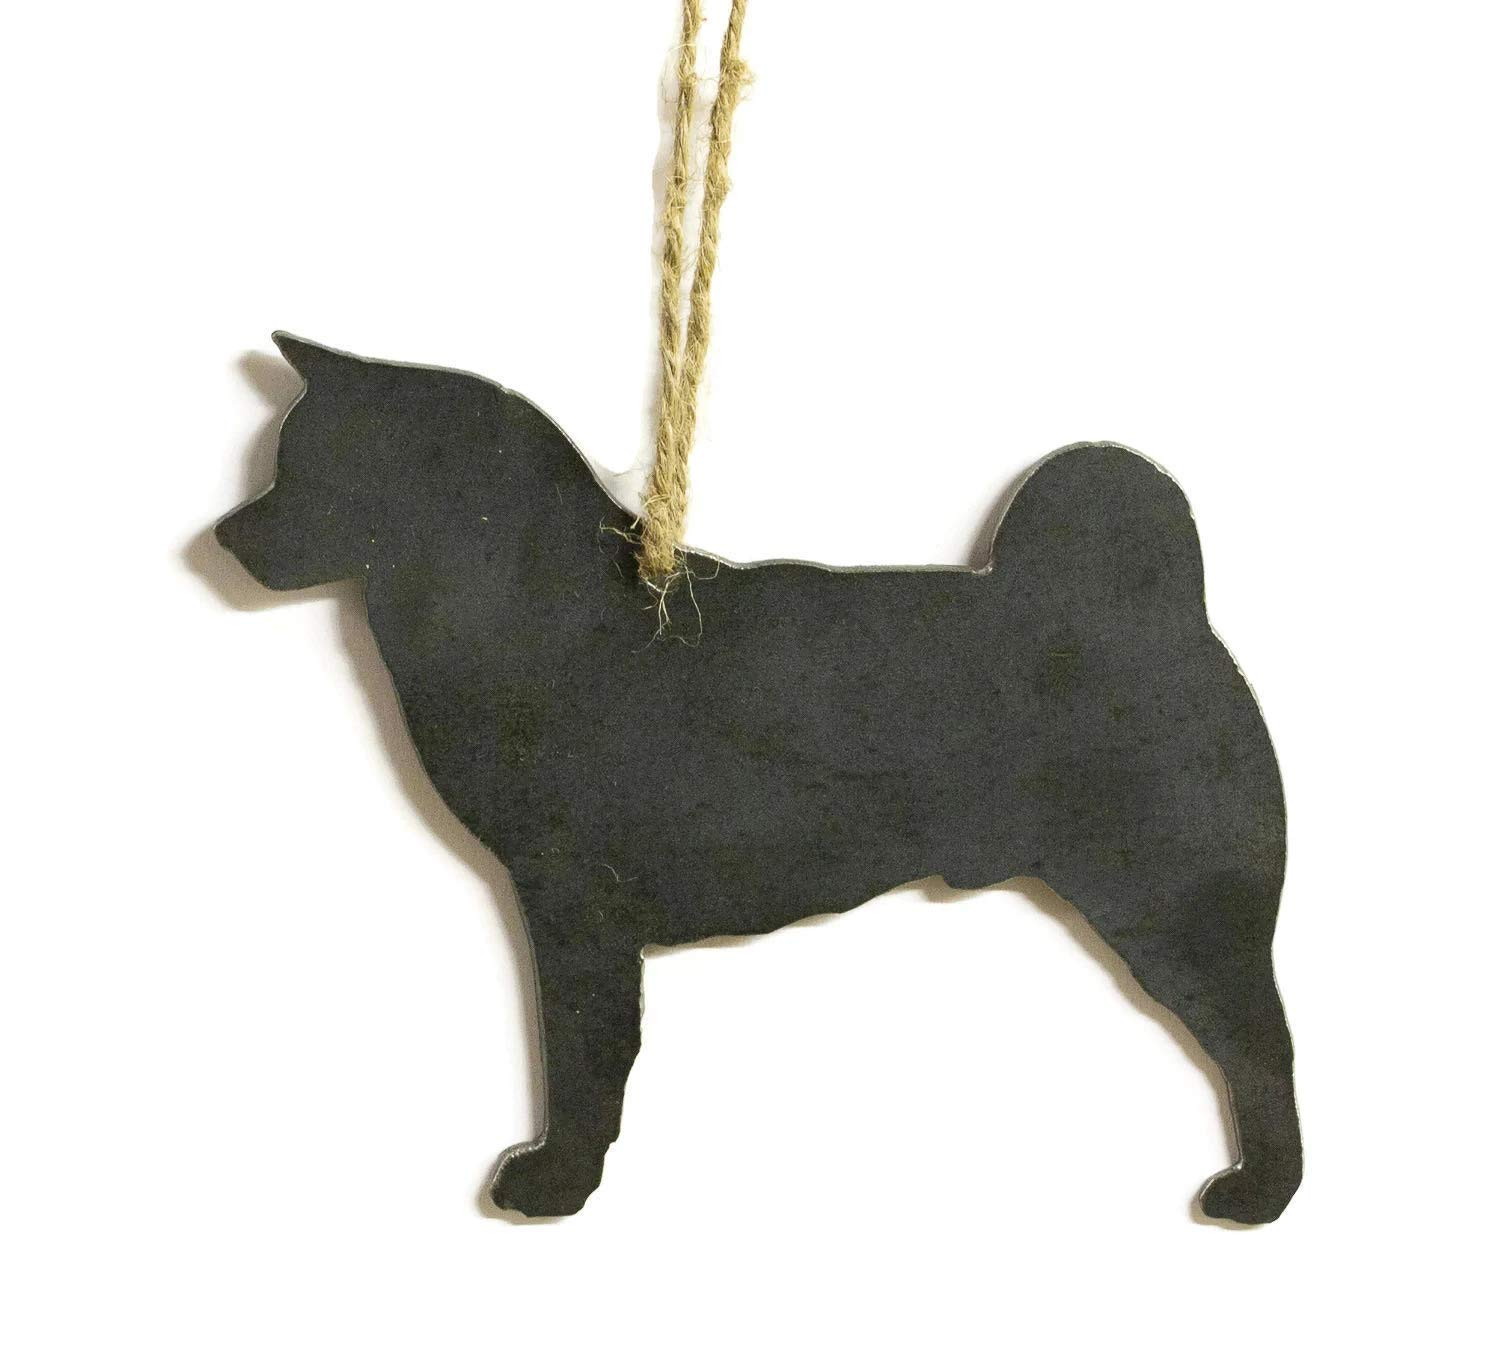 Akita Dog Metal Christmas Ornament Tree Stocking Stuffer Party Favor Holiday Decoration Raw Steel Gift Recycled Nature Home Decor 1